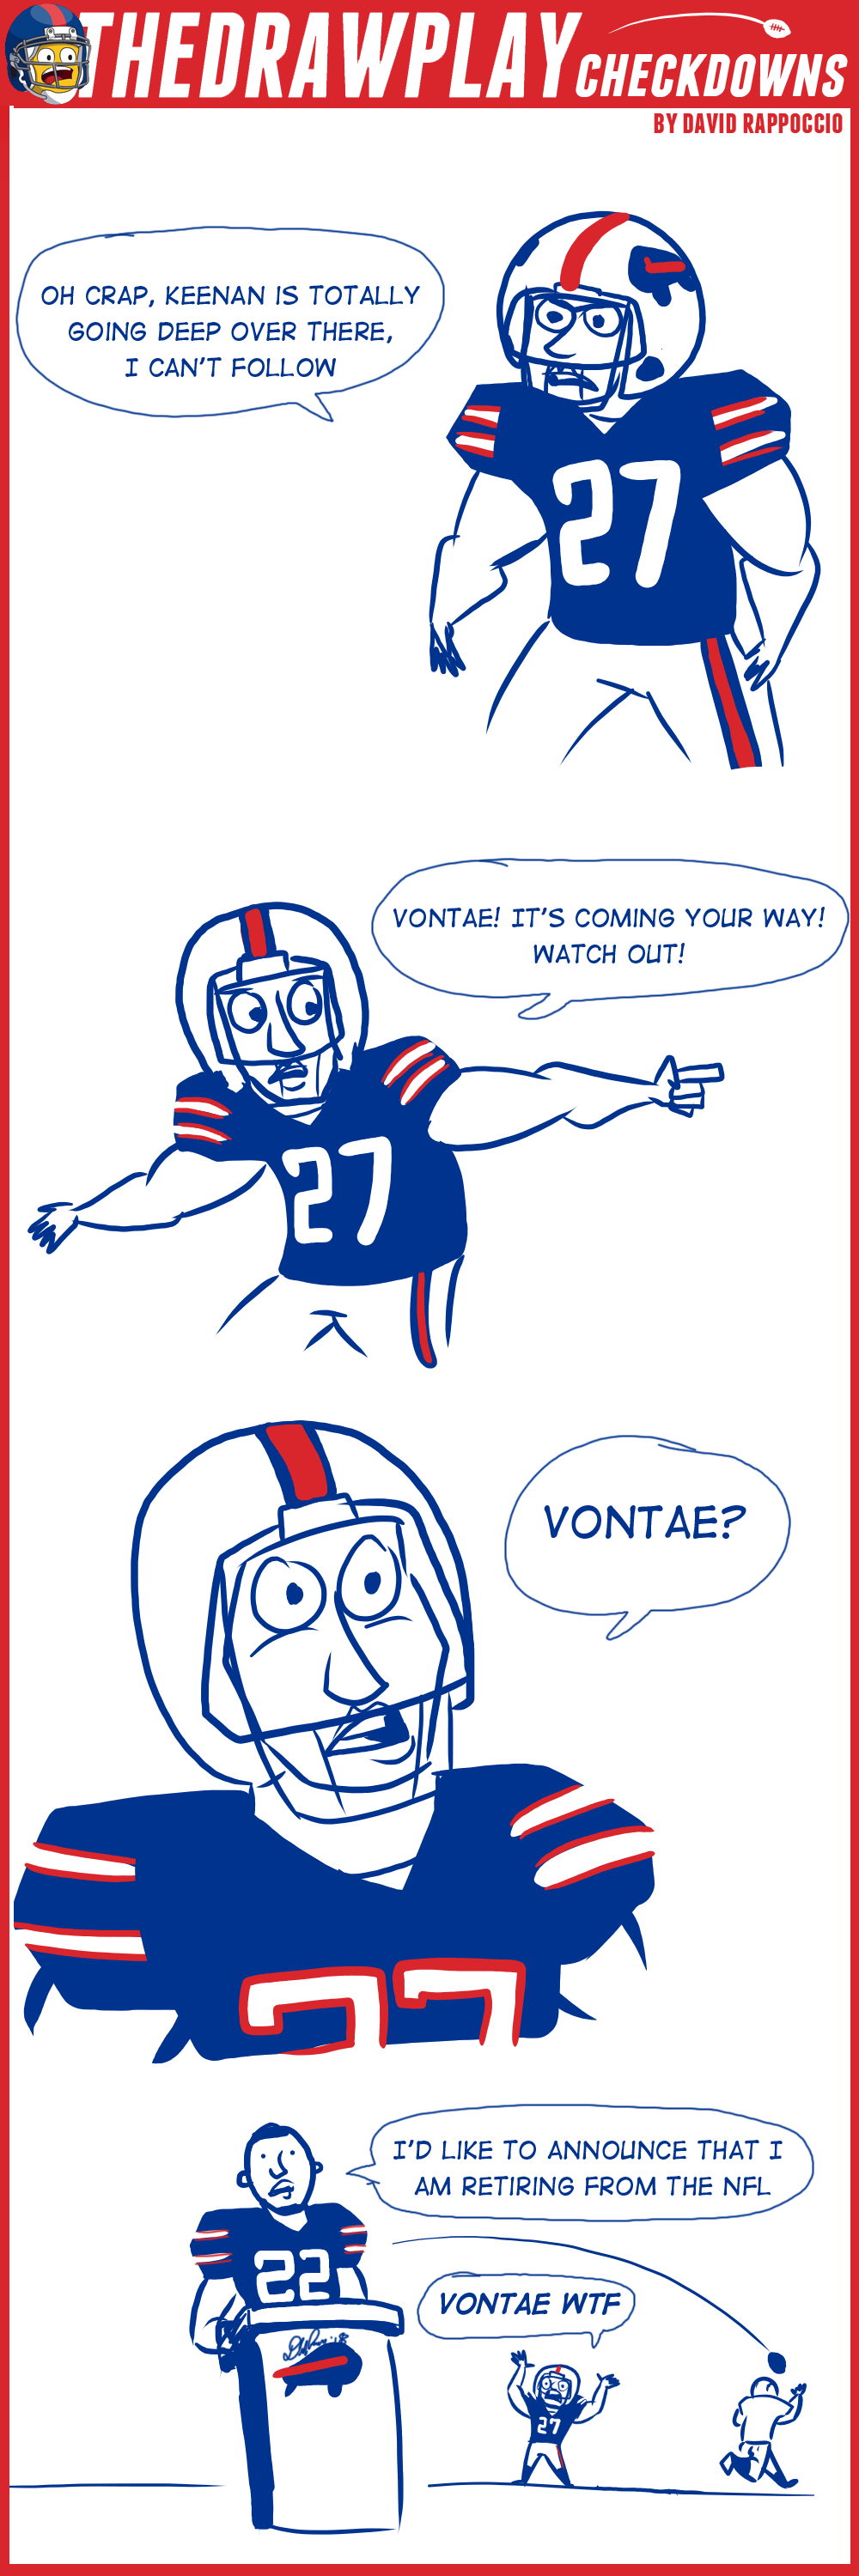 Tomorrow is only a Vontae away